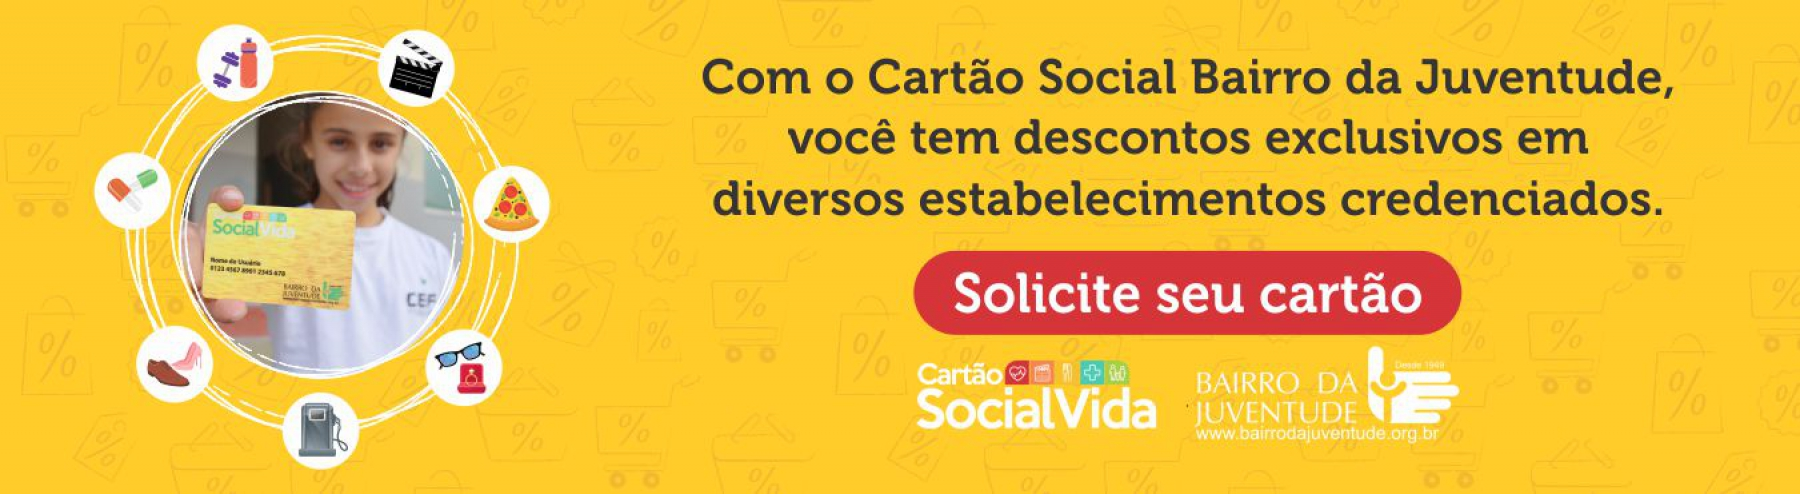 cartaoSocial